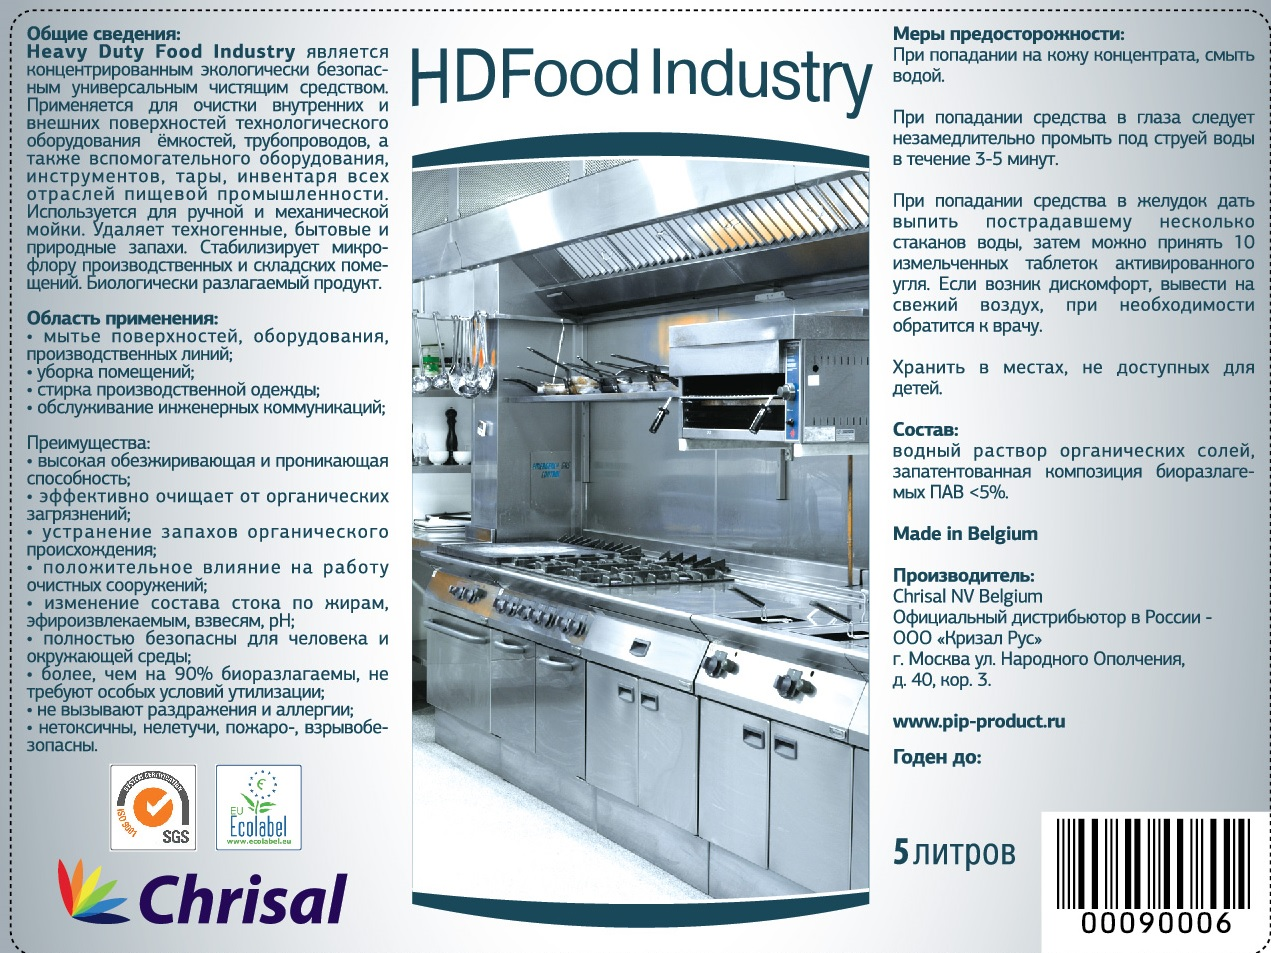 HD Food Industry